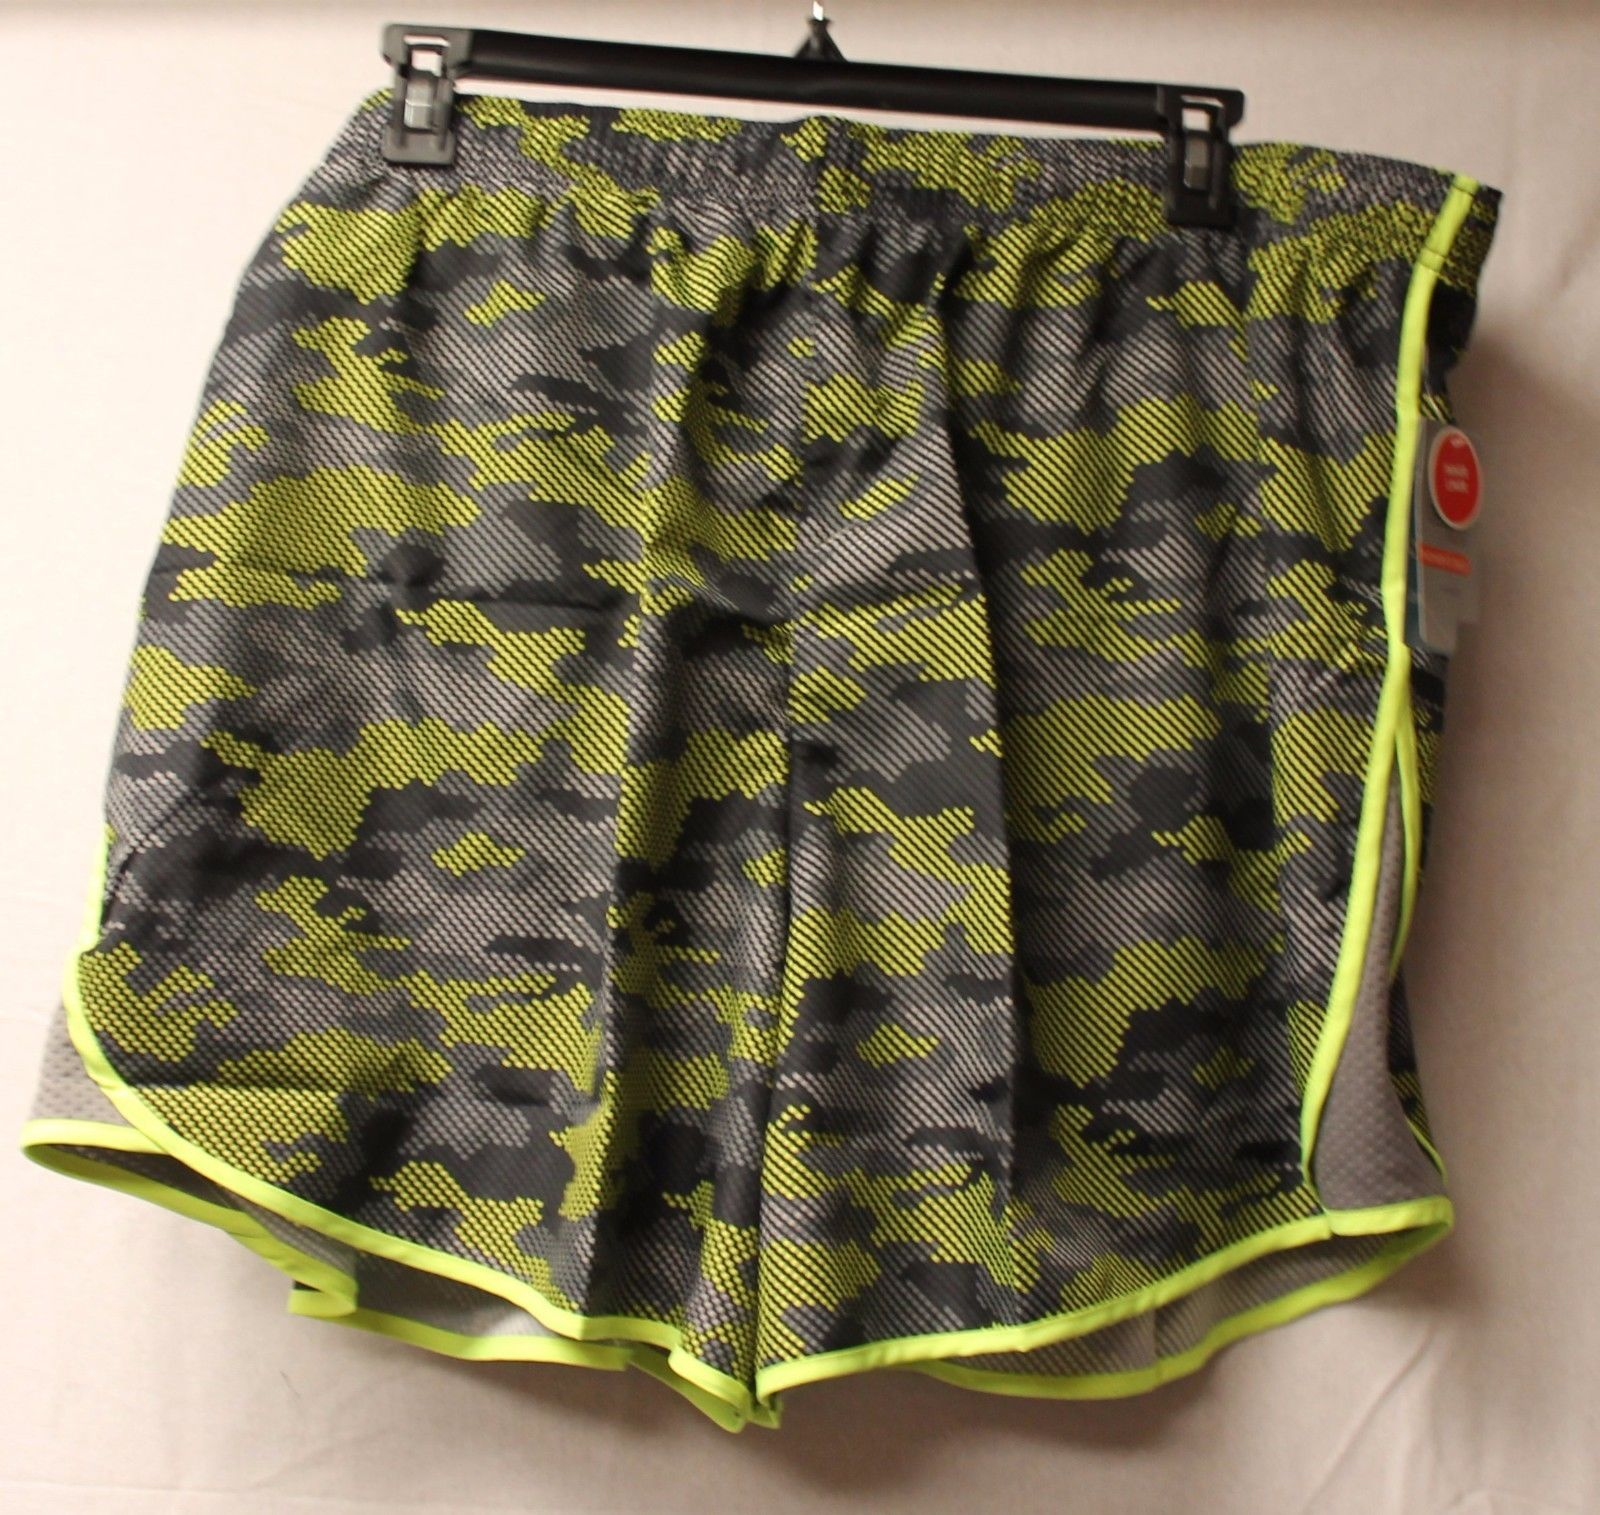 d90c001d813 S l1600. S l1600. Previous. NEW DANSKIN WOMENS PLUS SIZE 4X NEON YELLOW  CAMO WOVEN RUNNING SHORTS W LINER